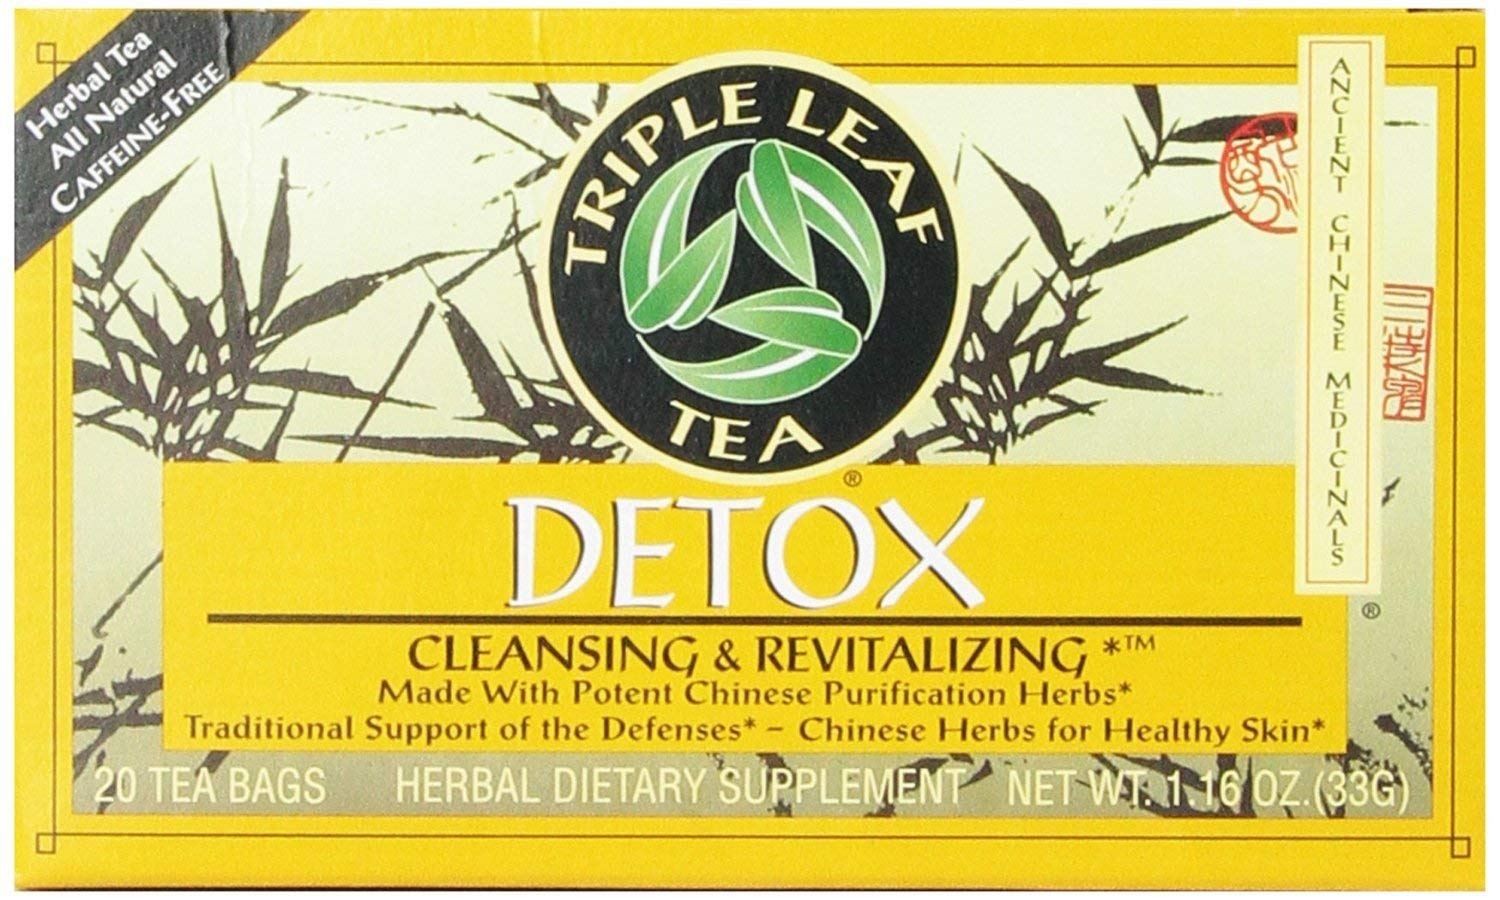 Triple Leaf Tea, Tea Bags, Detox, 1.16-Ounce Bags, 20-Count Boxes Pack of 12